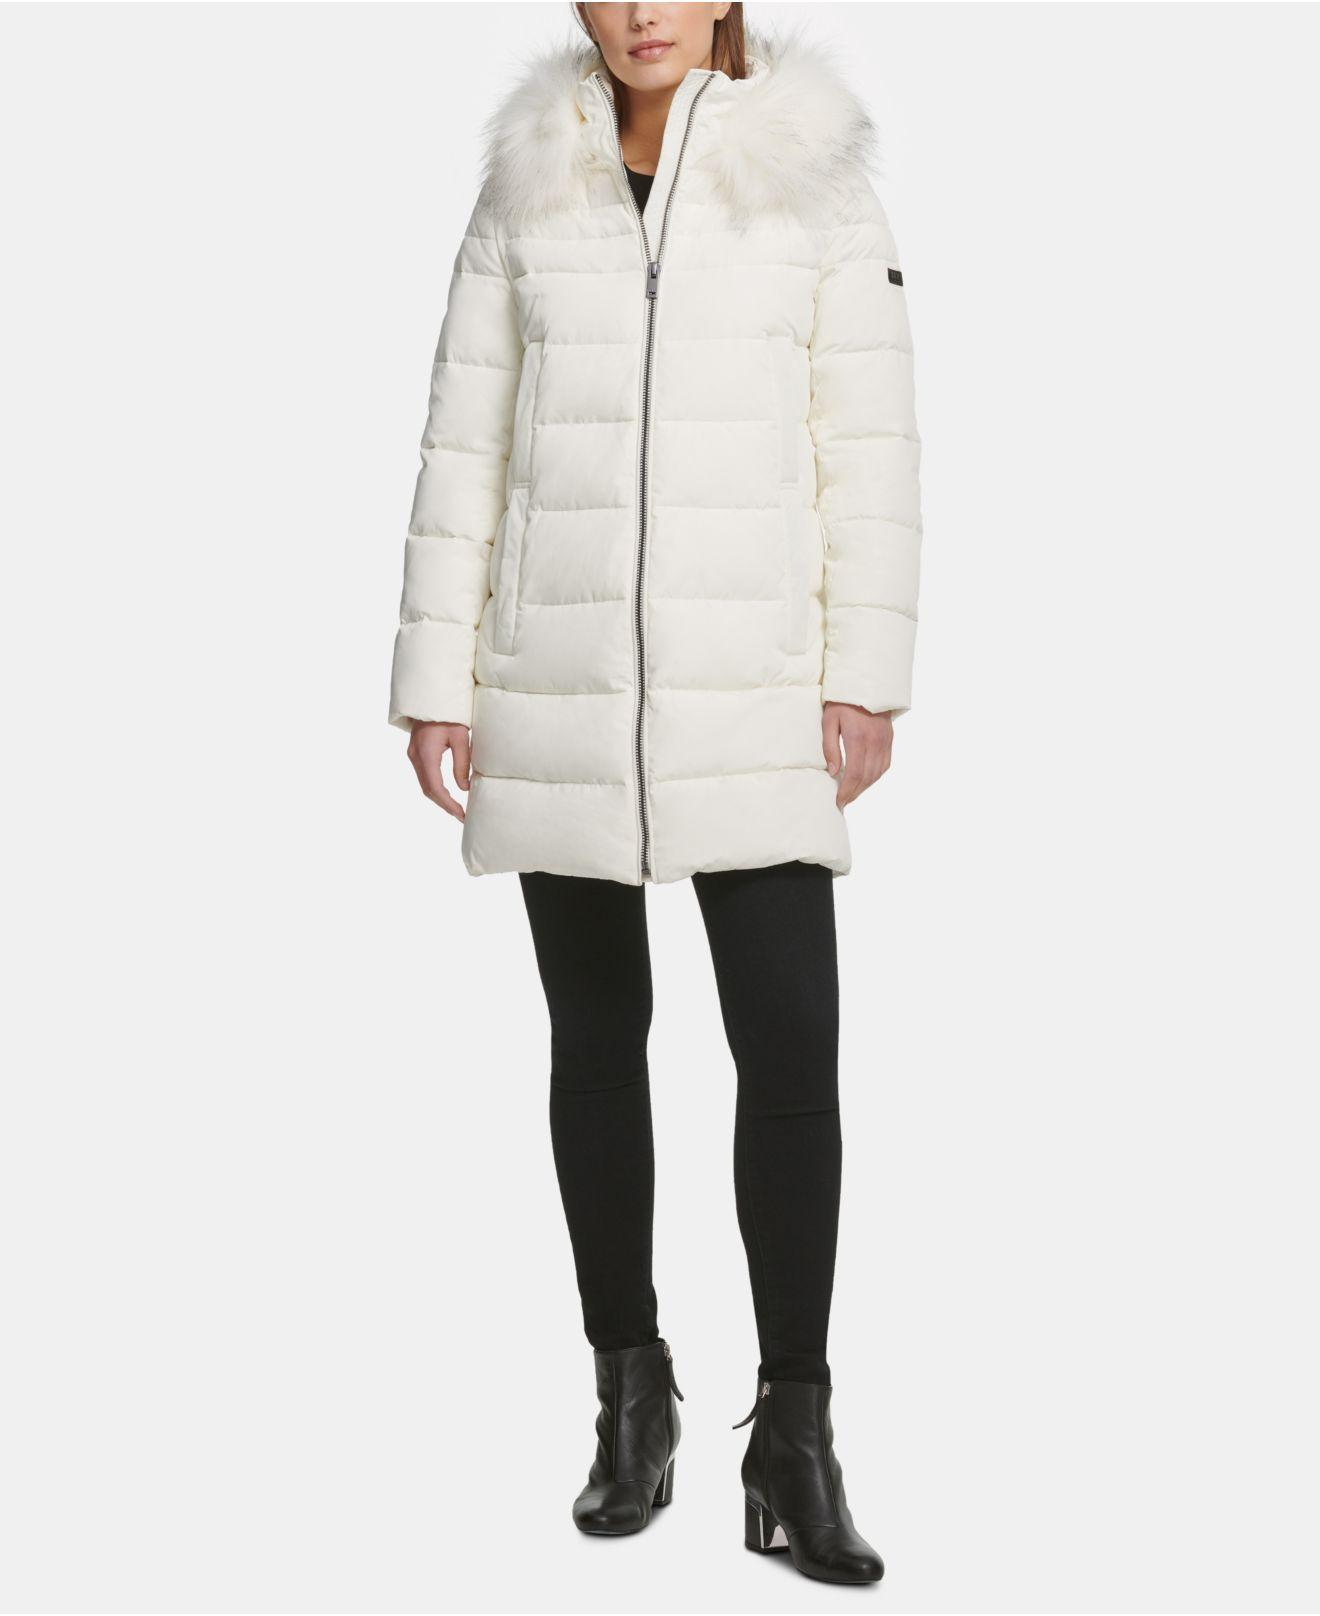 DKNY Hooded Faux-fur-trim Puffer Coat in Ivory (White) - Lyst